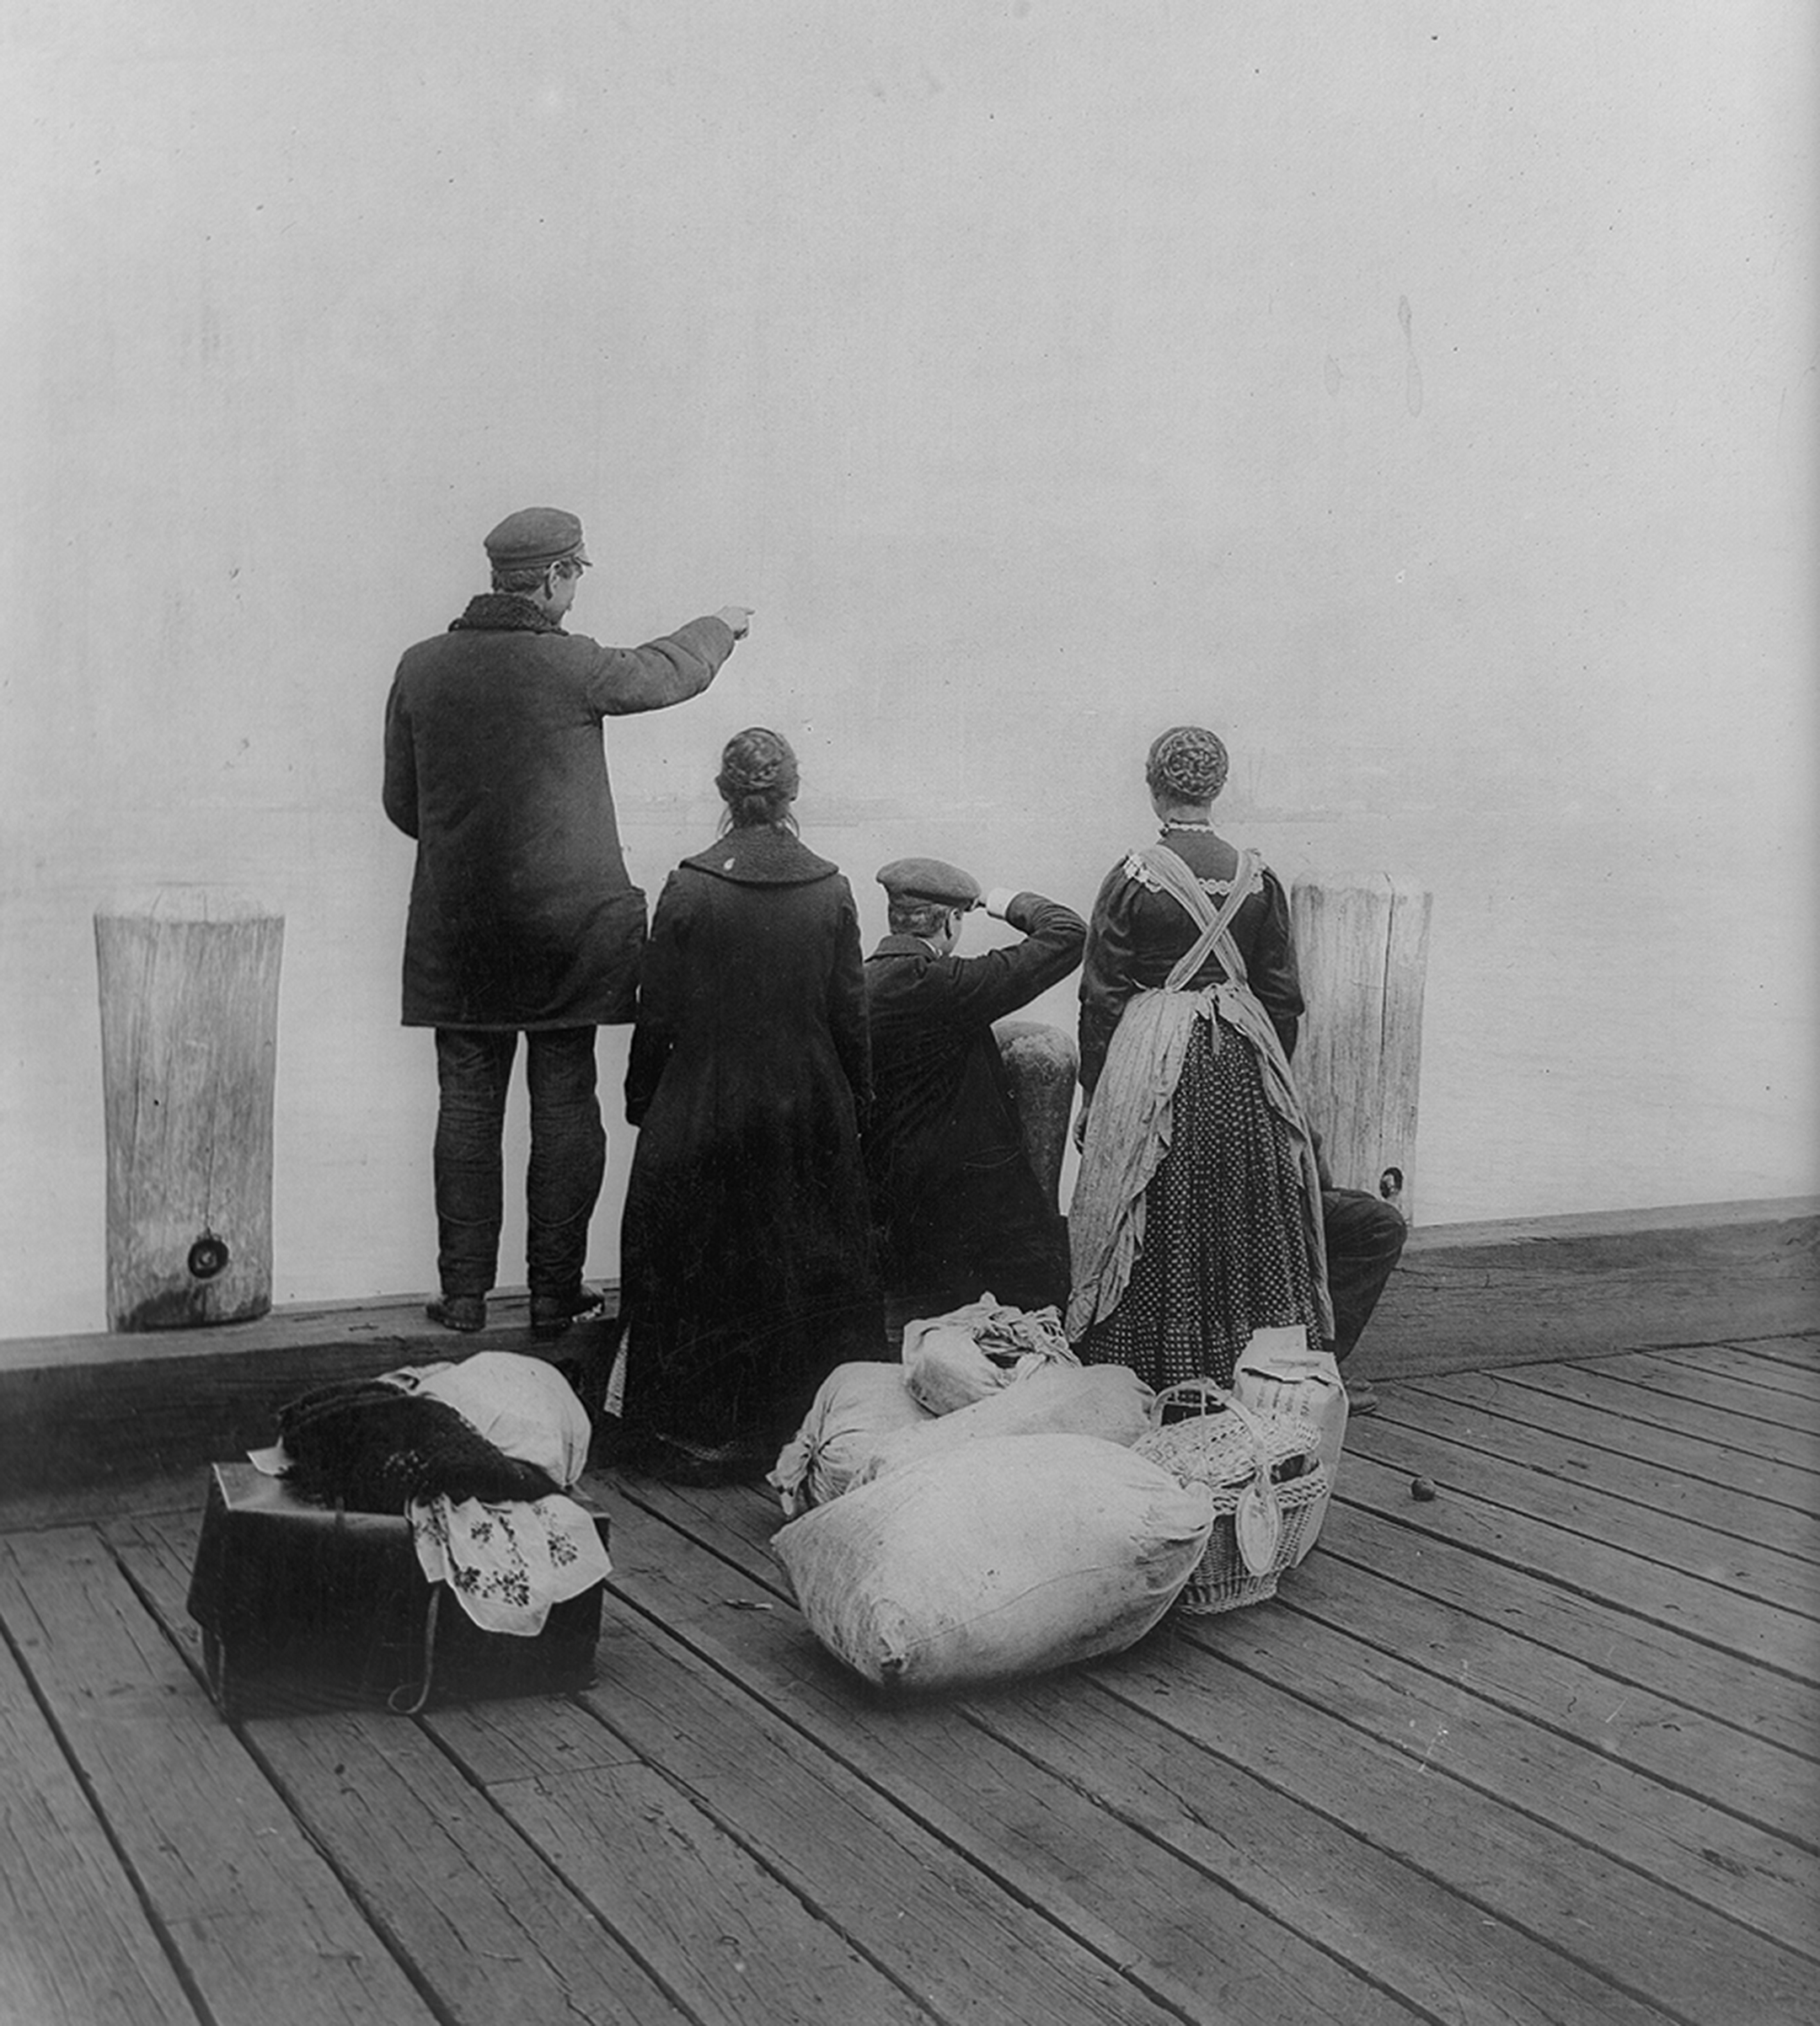 a black and white photo from 1912 of four immigrants and their belongings, seen from behind, on a dock, looking out over the water